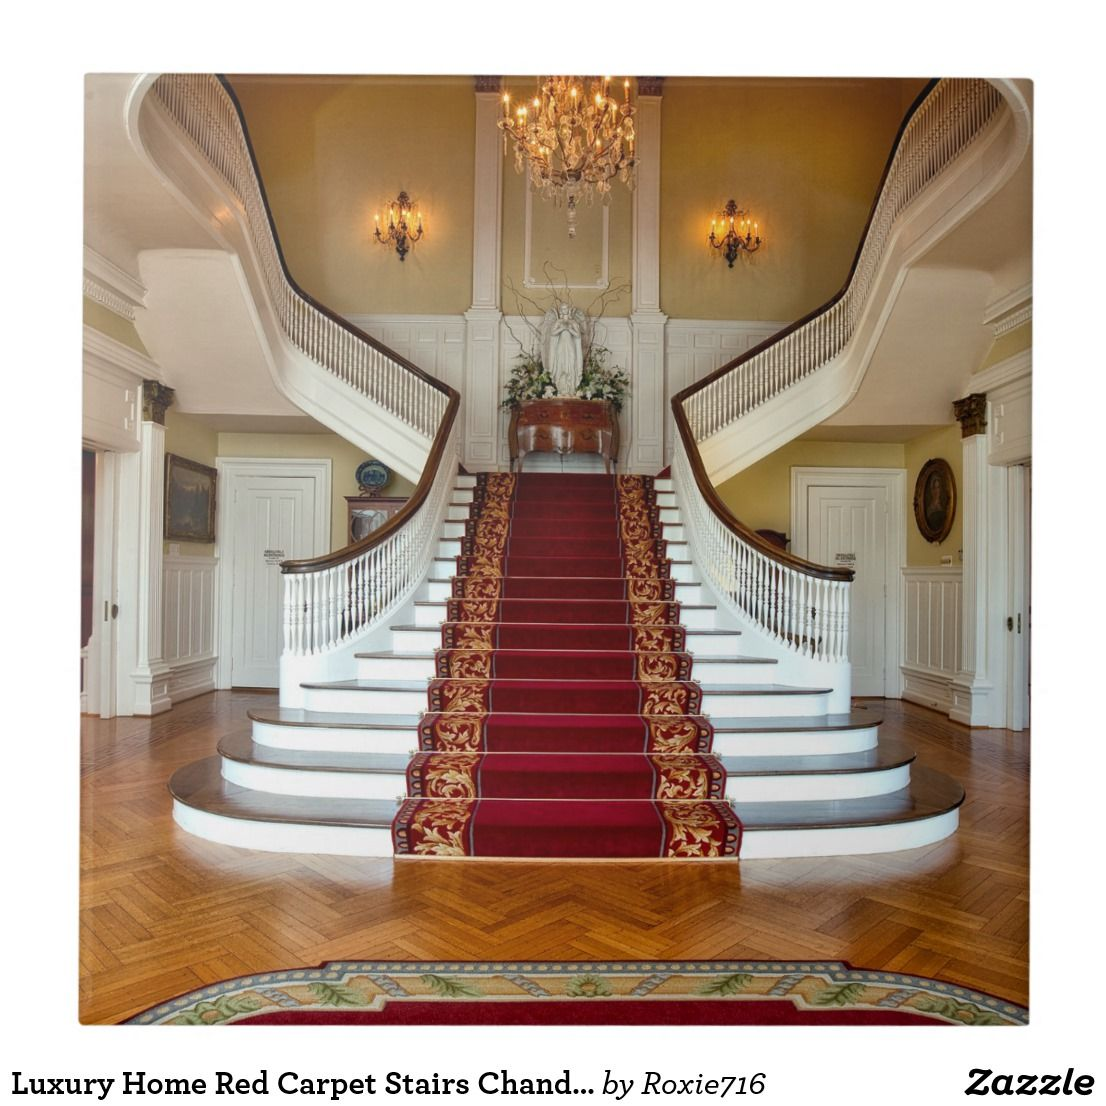 Luxury Home Red Carpet Stairs Chandelier Tile Zazzle Com | Stairs With Red Carpet | Event | Gold | Spiral Staircase | Traditional | White